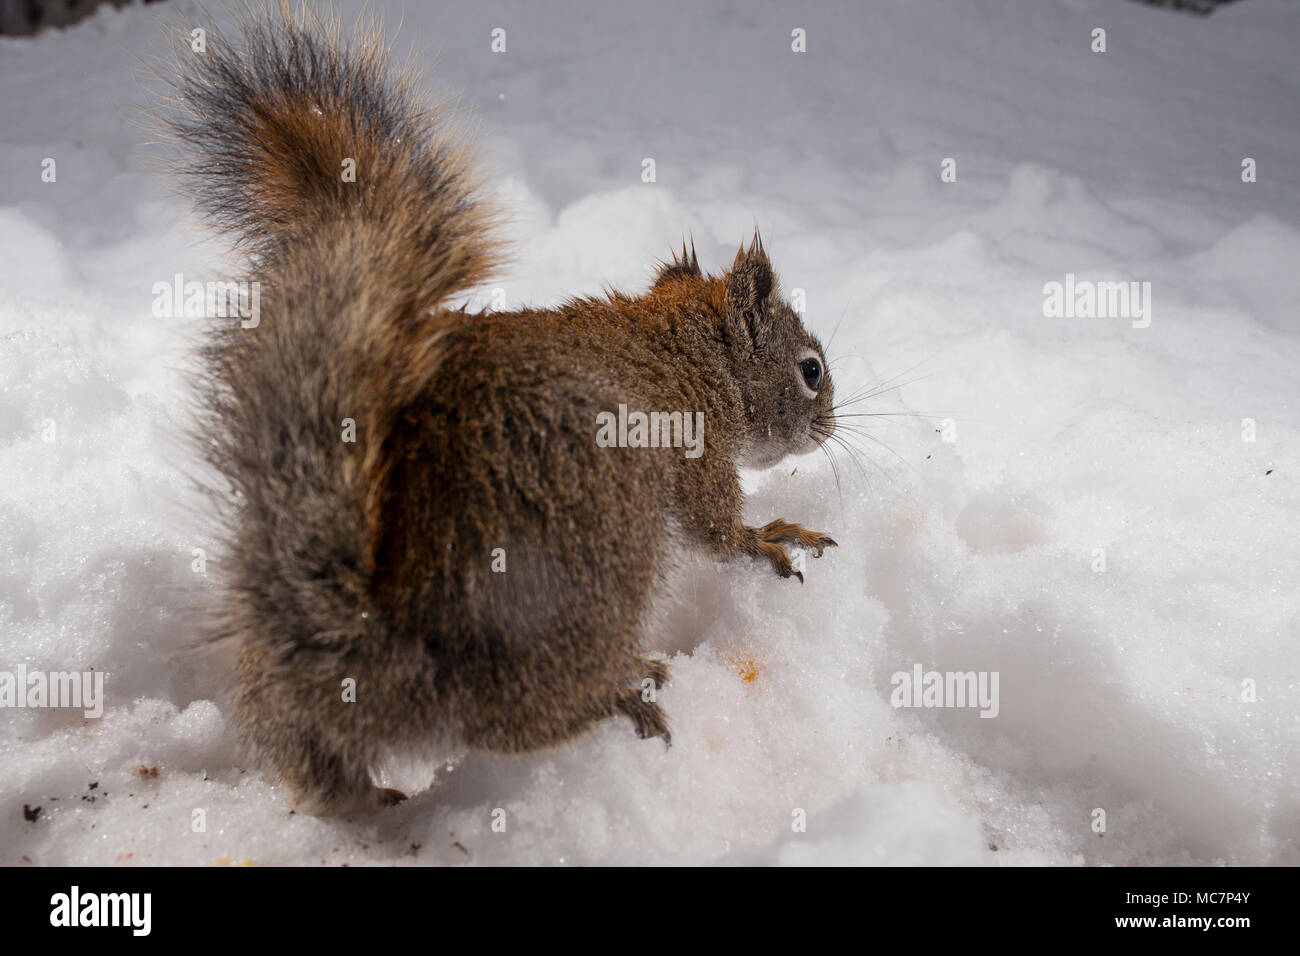 MAYNOOTH, ONTARIO, CANADA - April 12, 2018: A red squirrel (Tamiasciurus hudsonicus), part of the Sciuridae family forages for food.  ( Ryan Carter ) - Stock Image